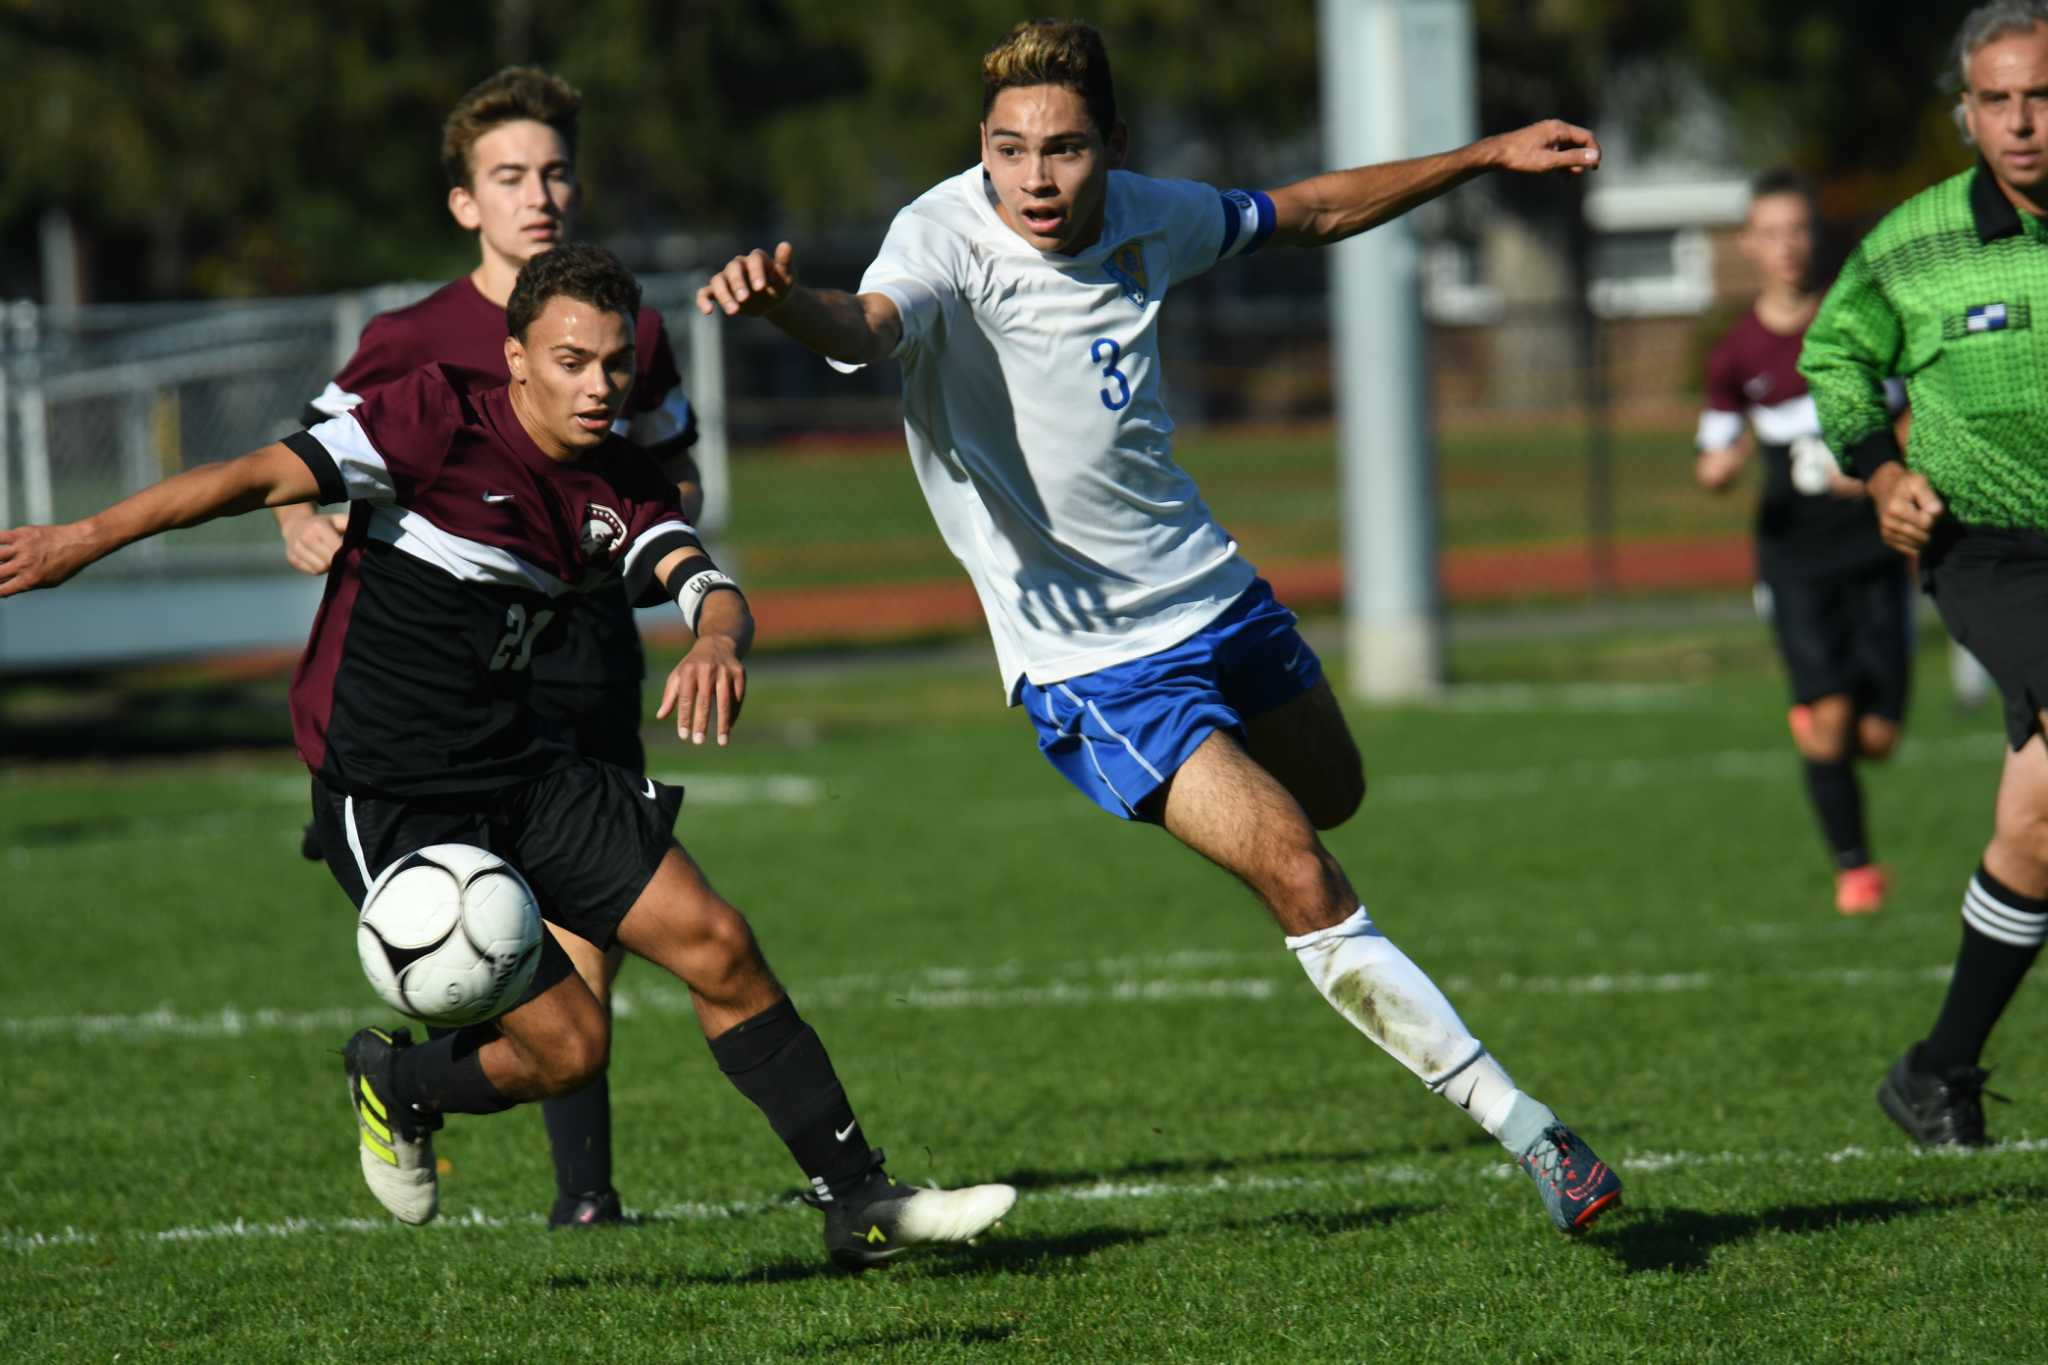 Times Union Boys Soccer Large School All Stars Times Union